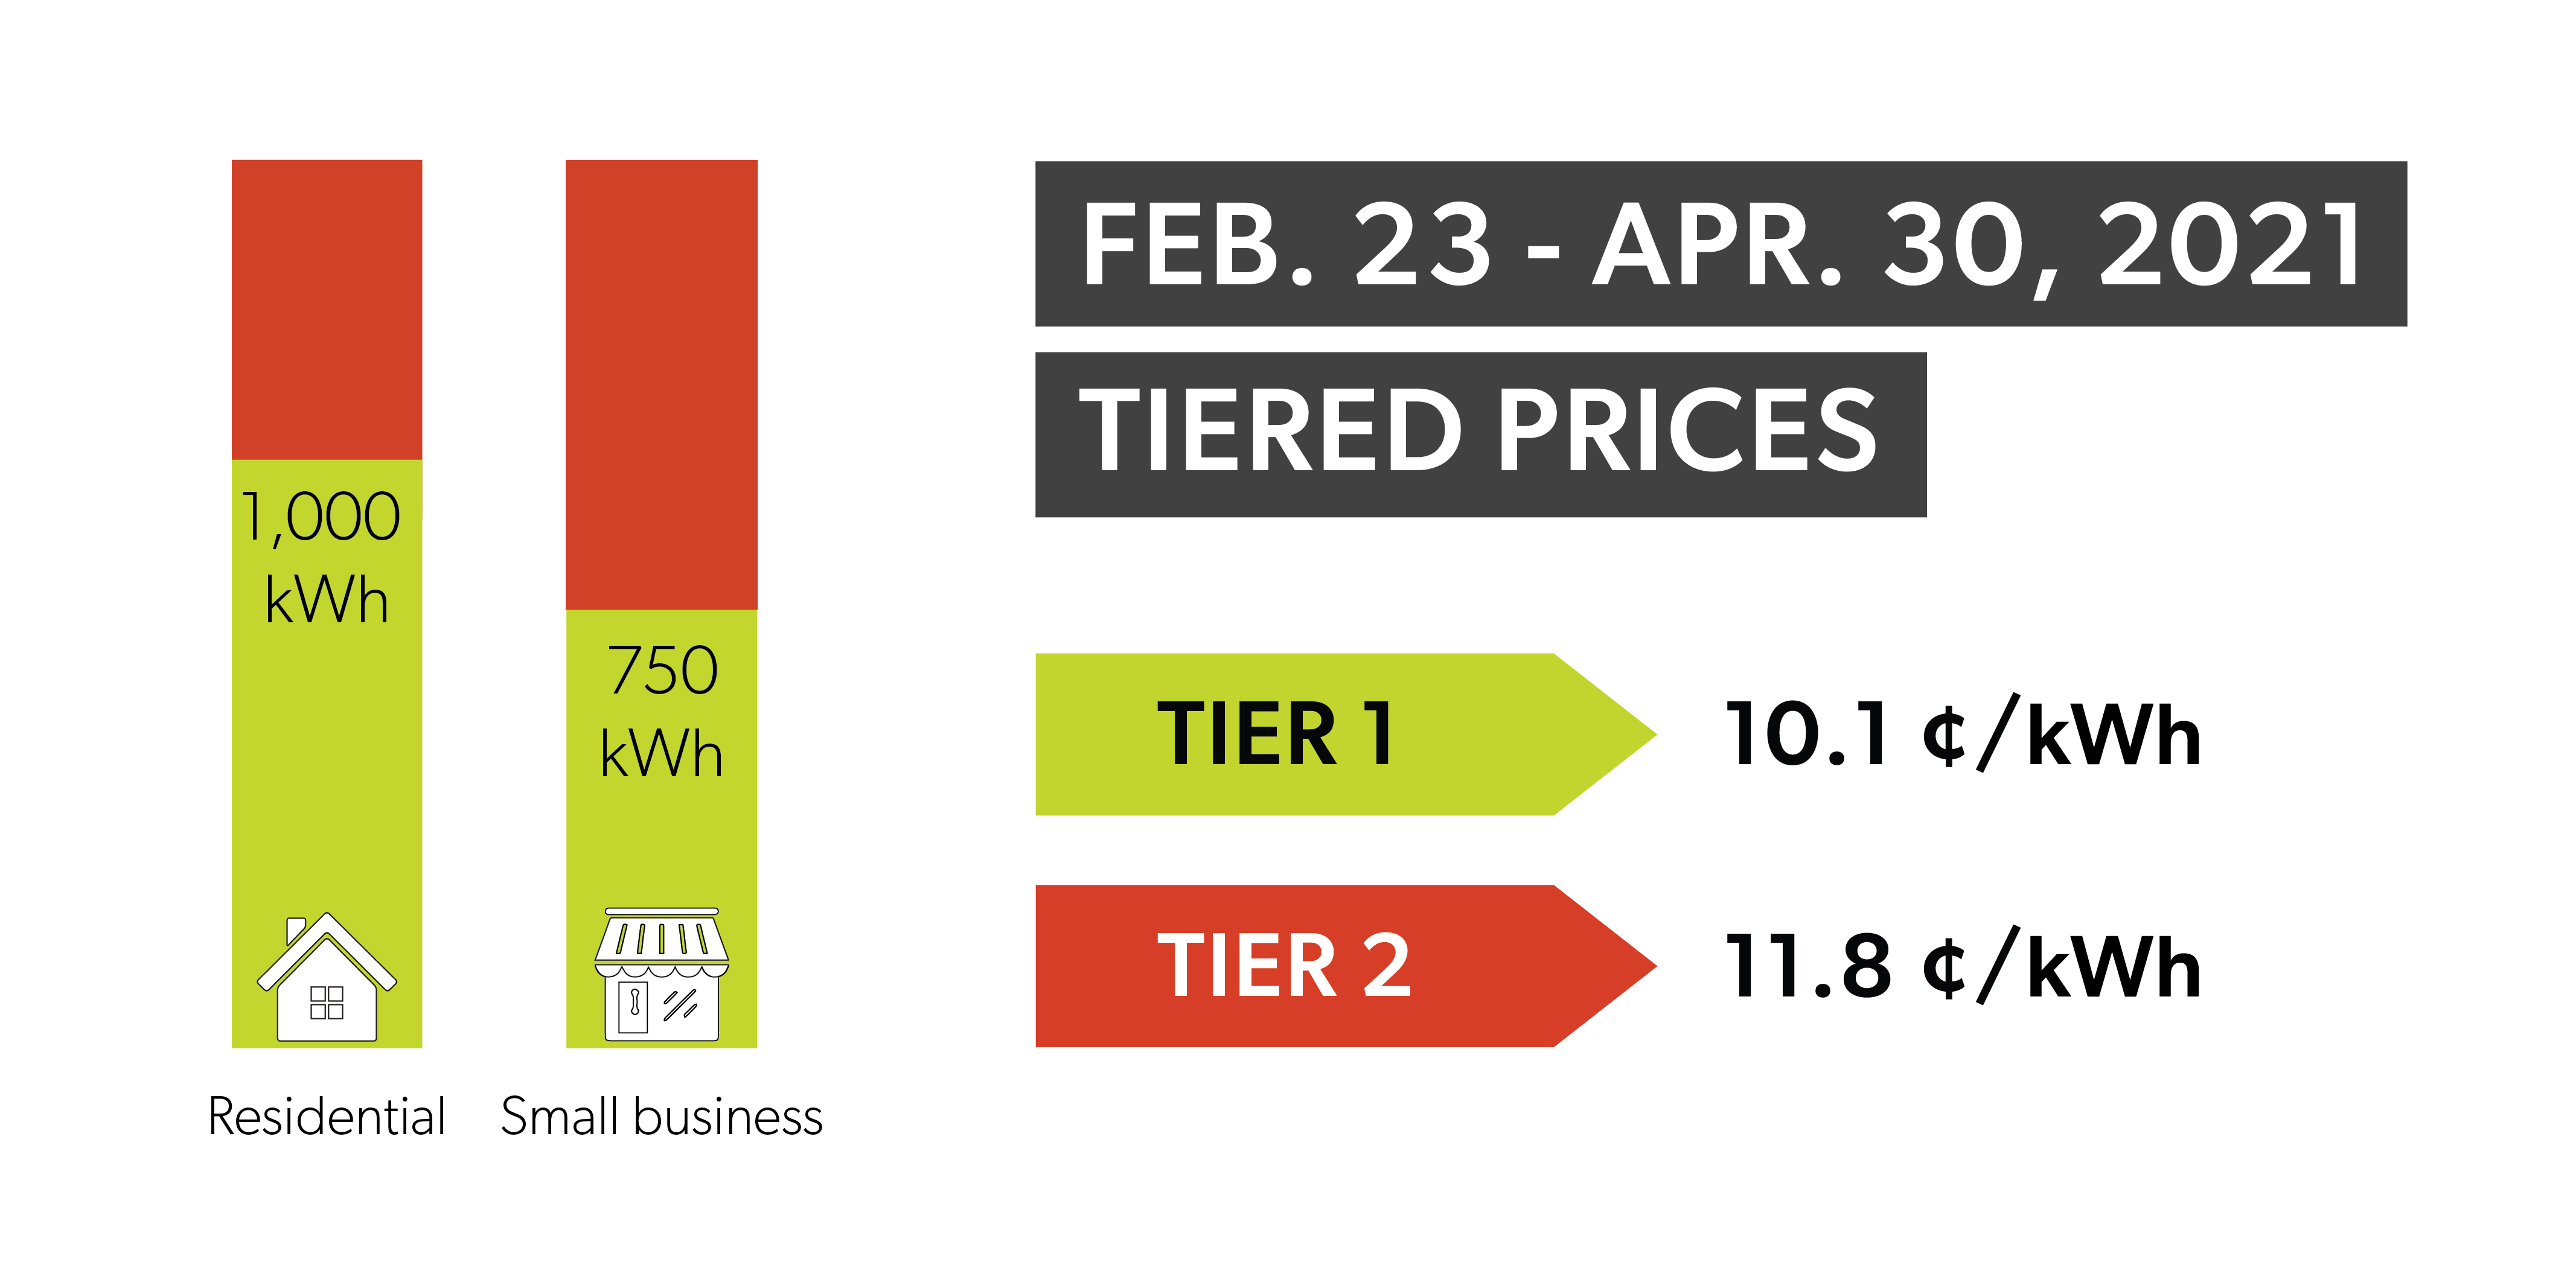 Tiered pricing. Tier one 10.1 cents. Tier two 11.8 cents.